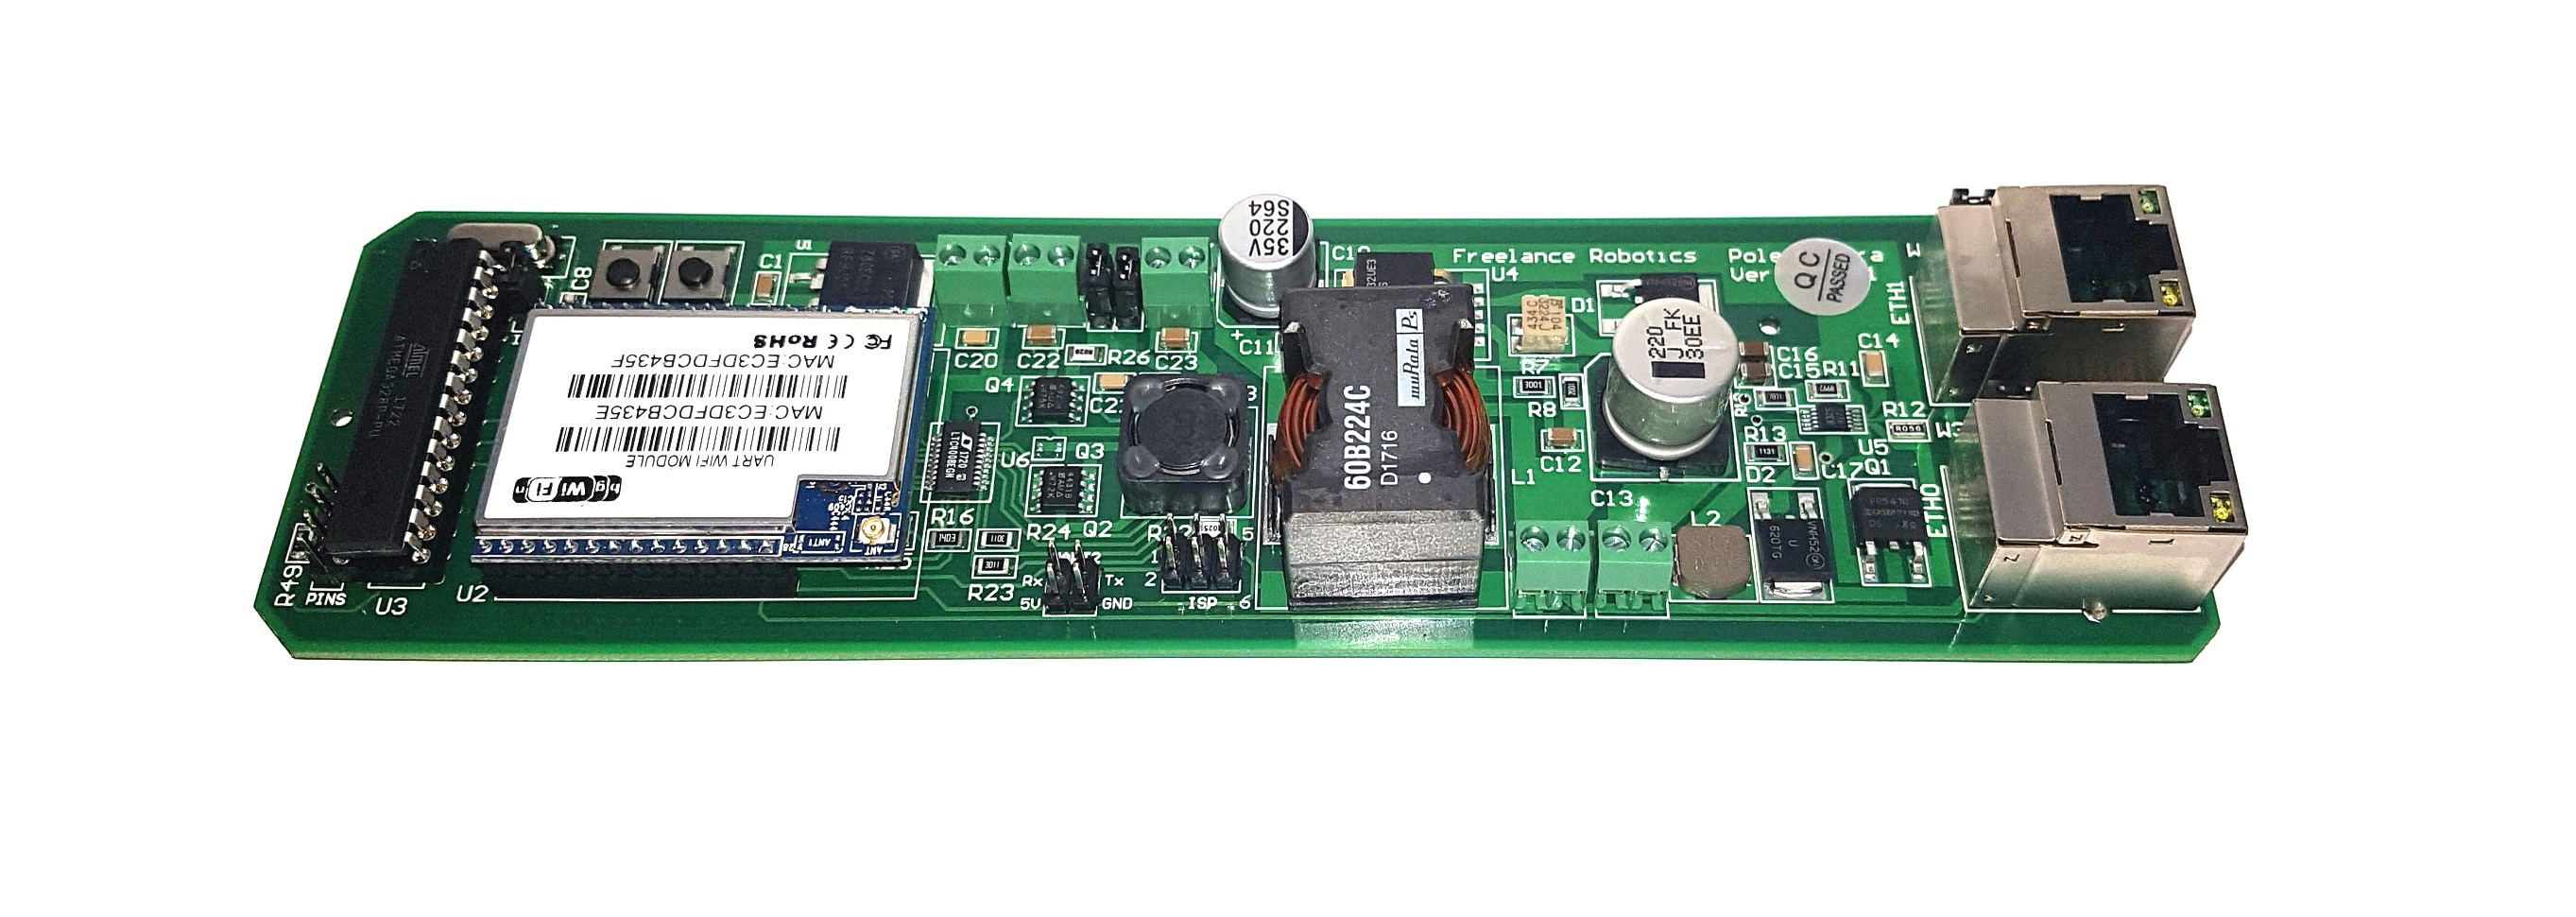 Custom Printed Circuit Boards Pcb Freelance Robotics Board Is A Used In Electronics I Use It As By